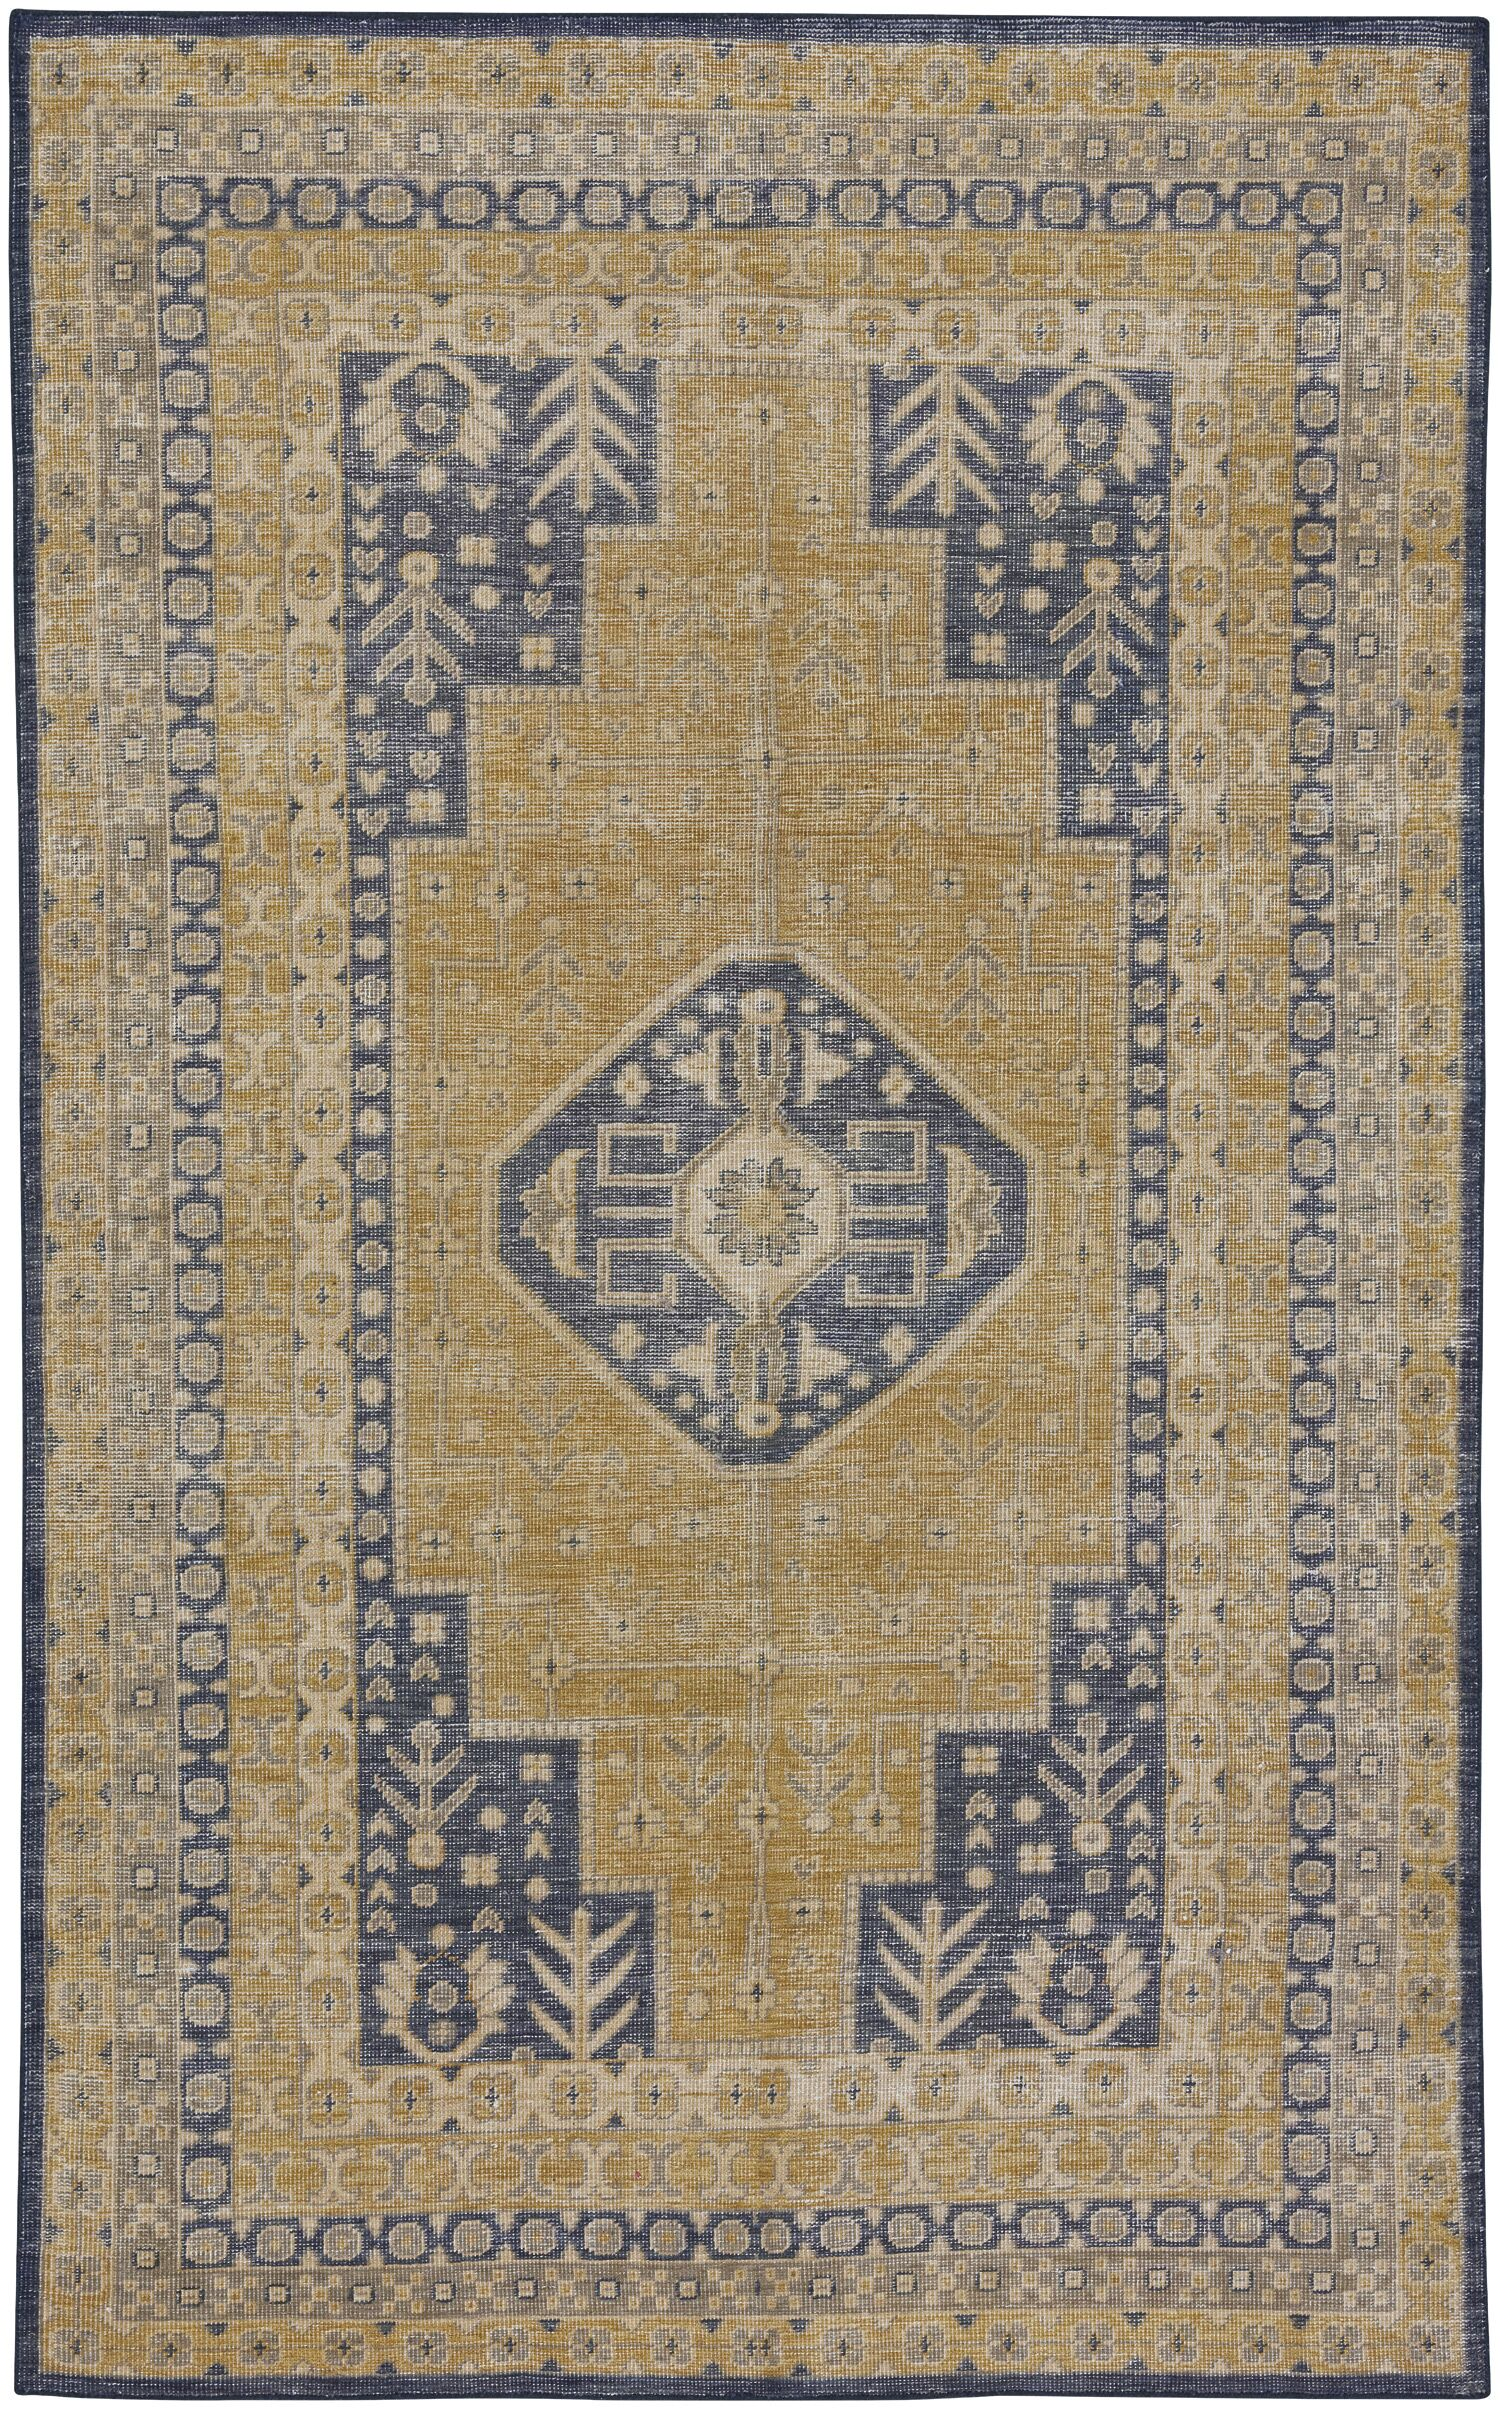 Caria Hand-Knotted Golden/Dark Blue Area Rug Rug Size: 5'6